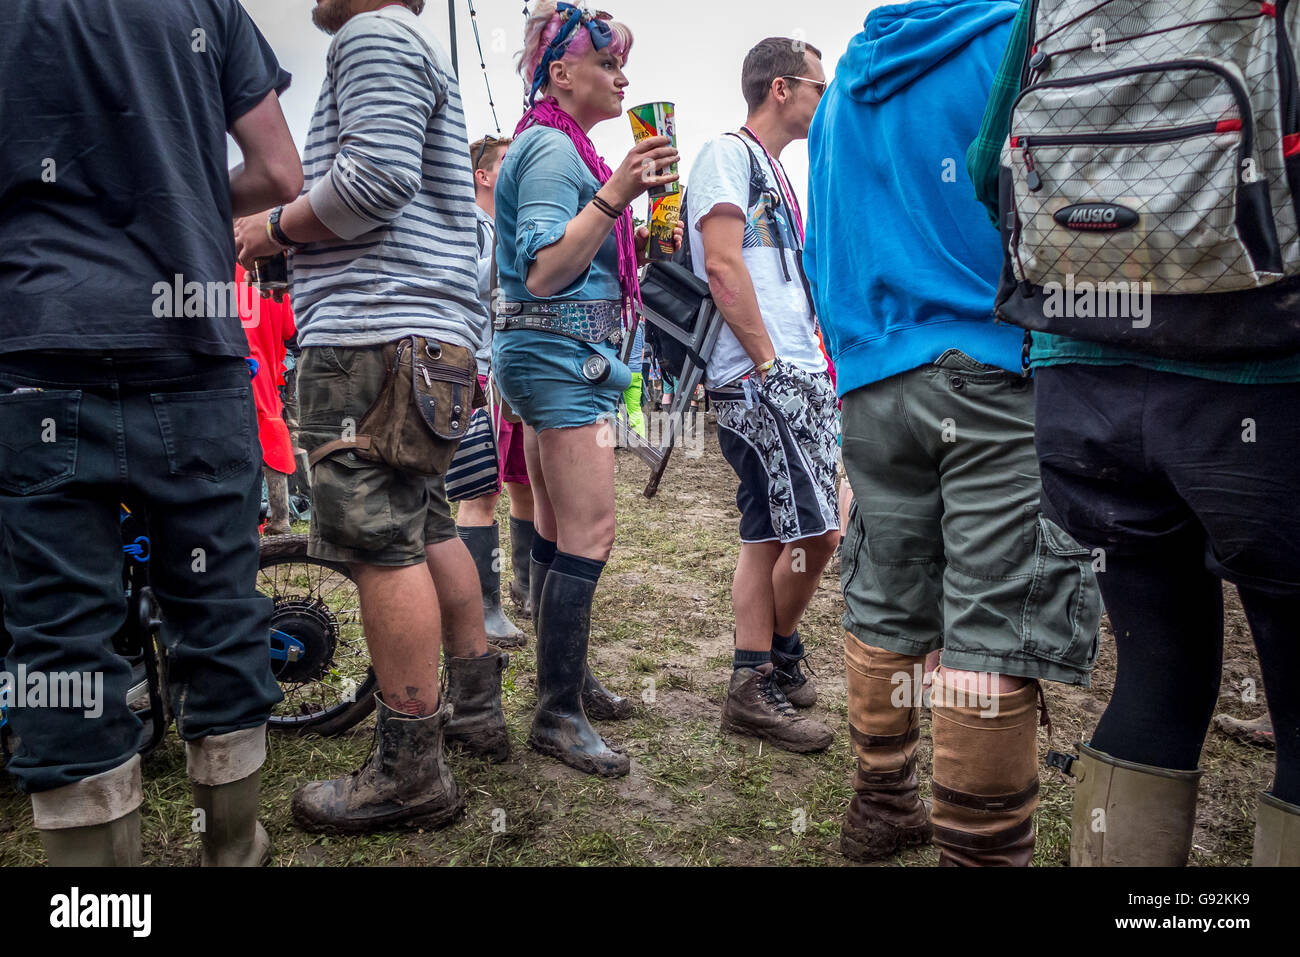 A reveller at William's Green at The 2016 Glastonbury Festival of Contemporary Performing Arts. - Stock Image